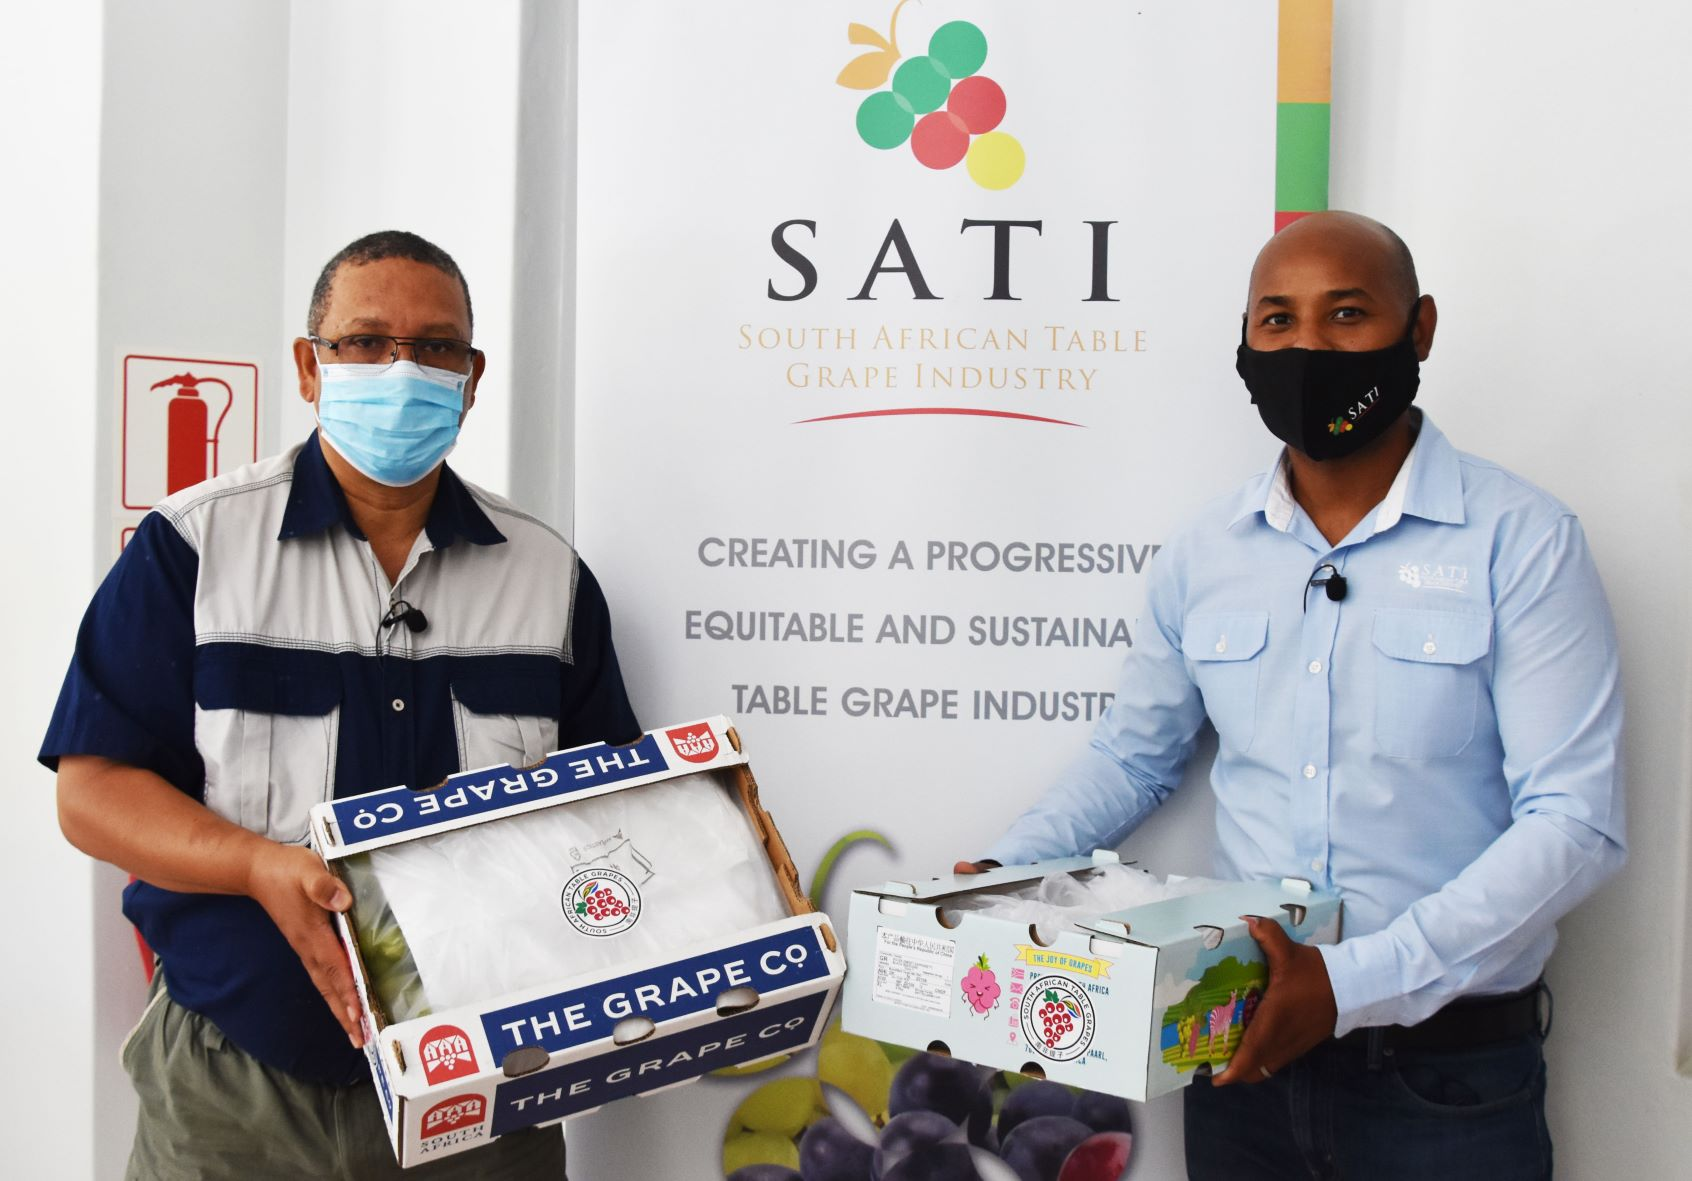 STRATEGIC PARTNERSHIP BETWEEN SATI AND WESTERN CAPE DEPARTMENT OF AGRICULTURE TO INCREASE EXPORTS TO CHINA